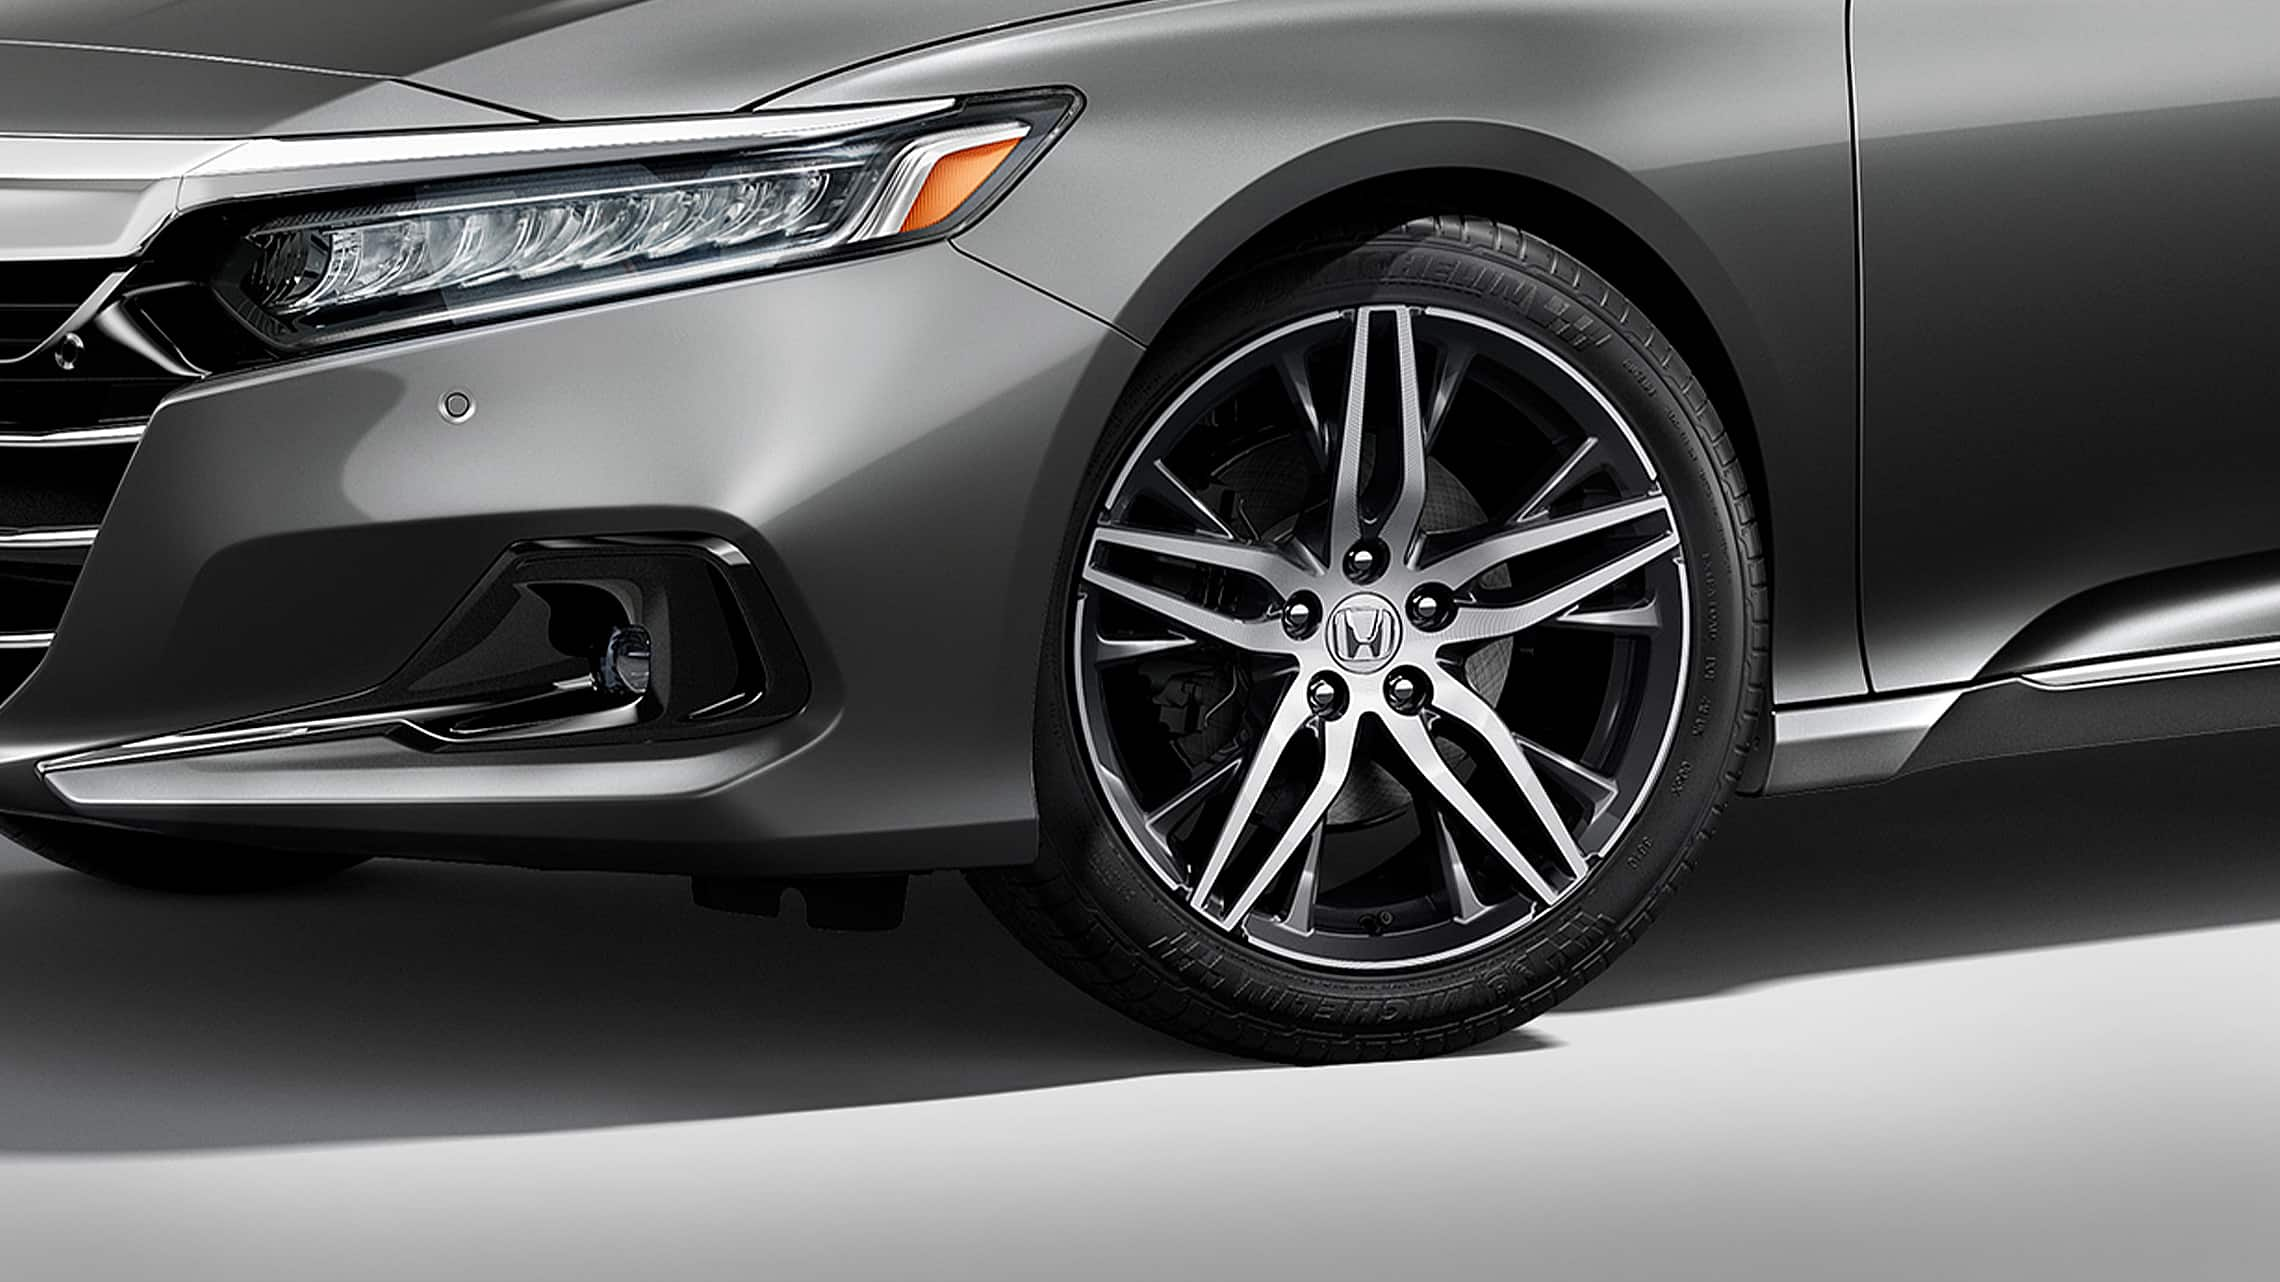 19-inch alloy wheel detail on the 2021 Honda Accord Touring 2.0T in Modern Steel Metallic.